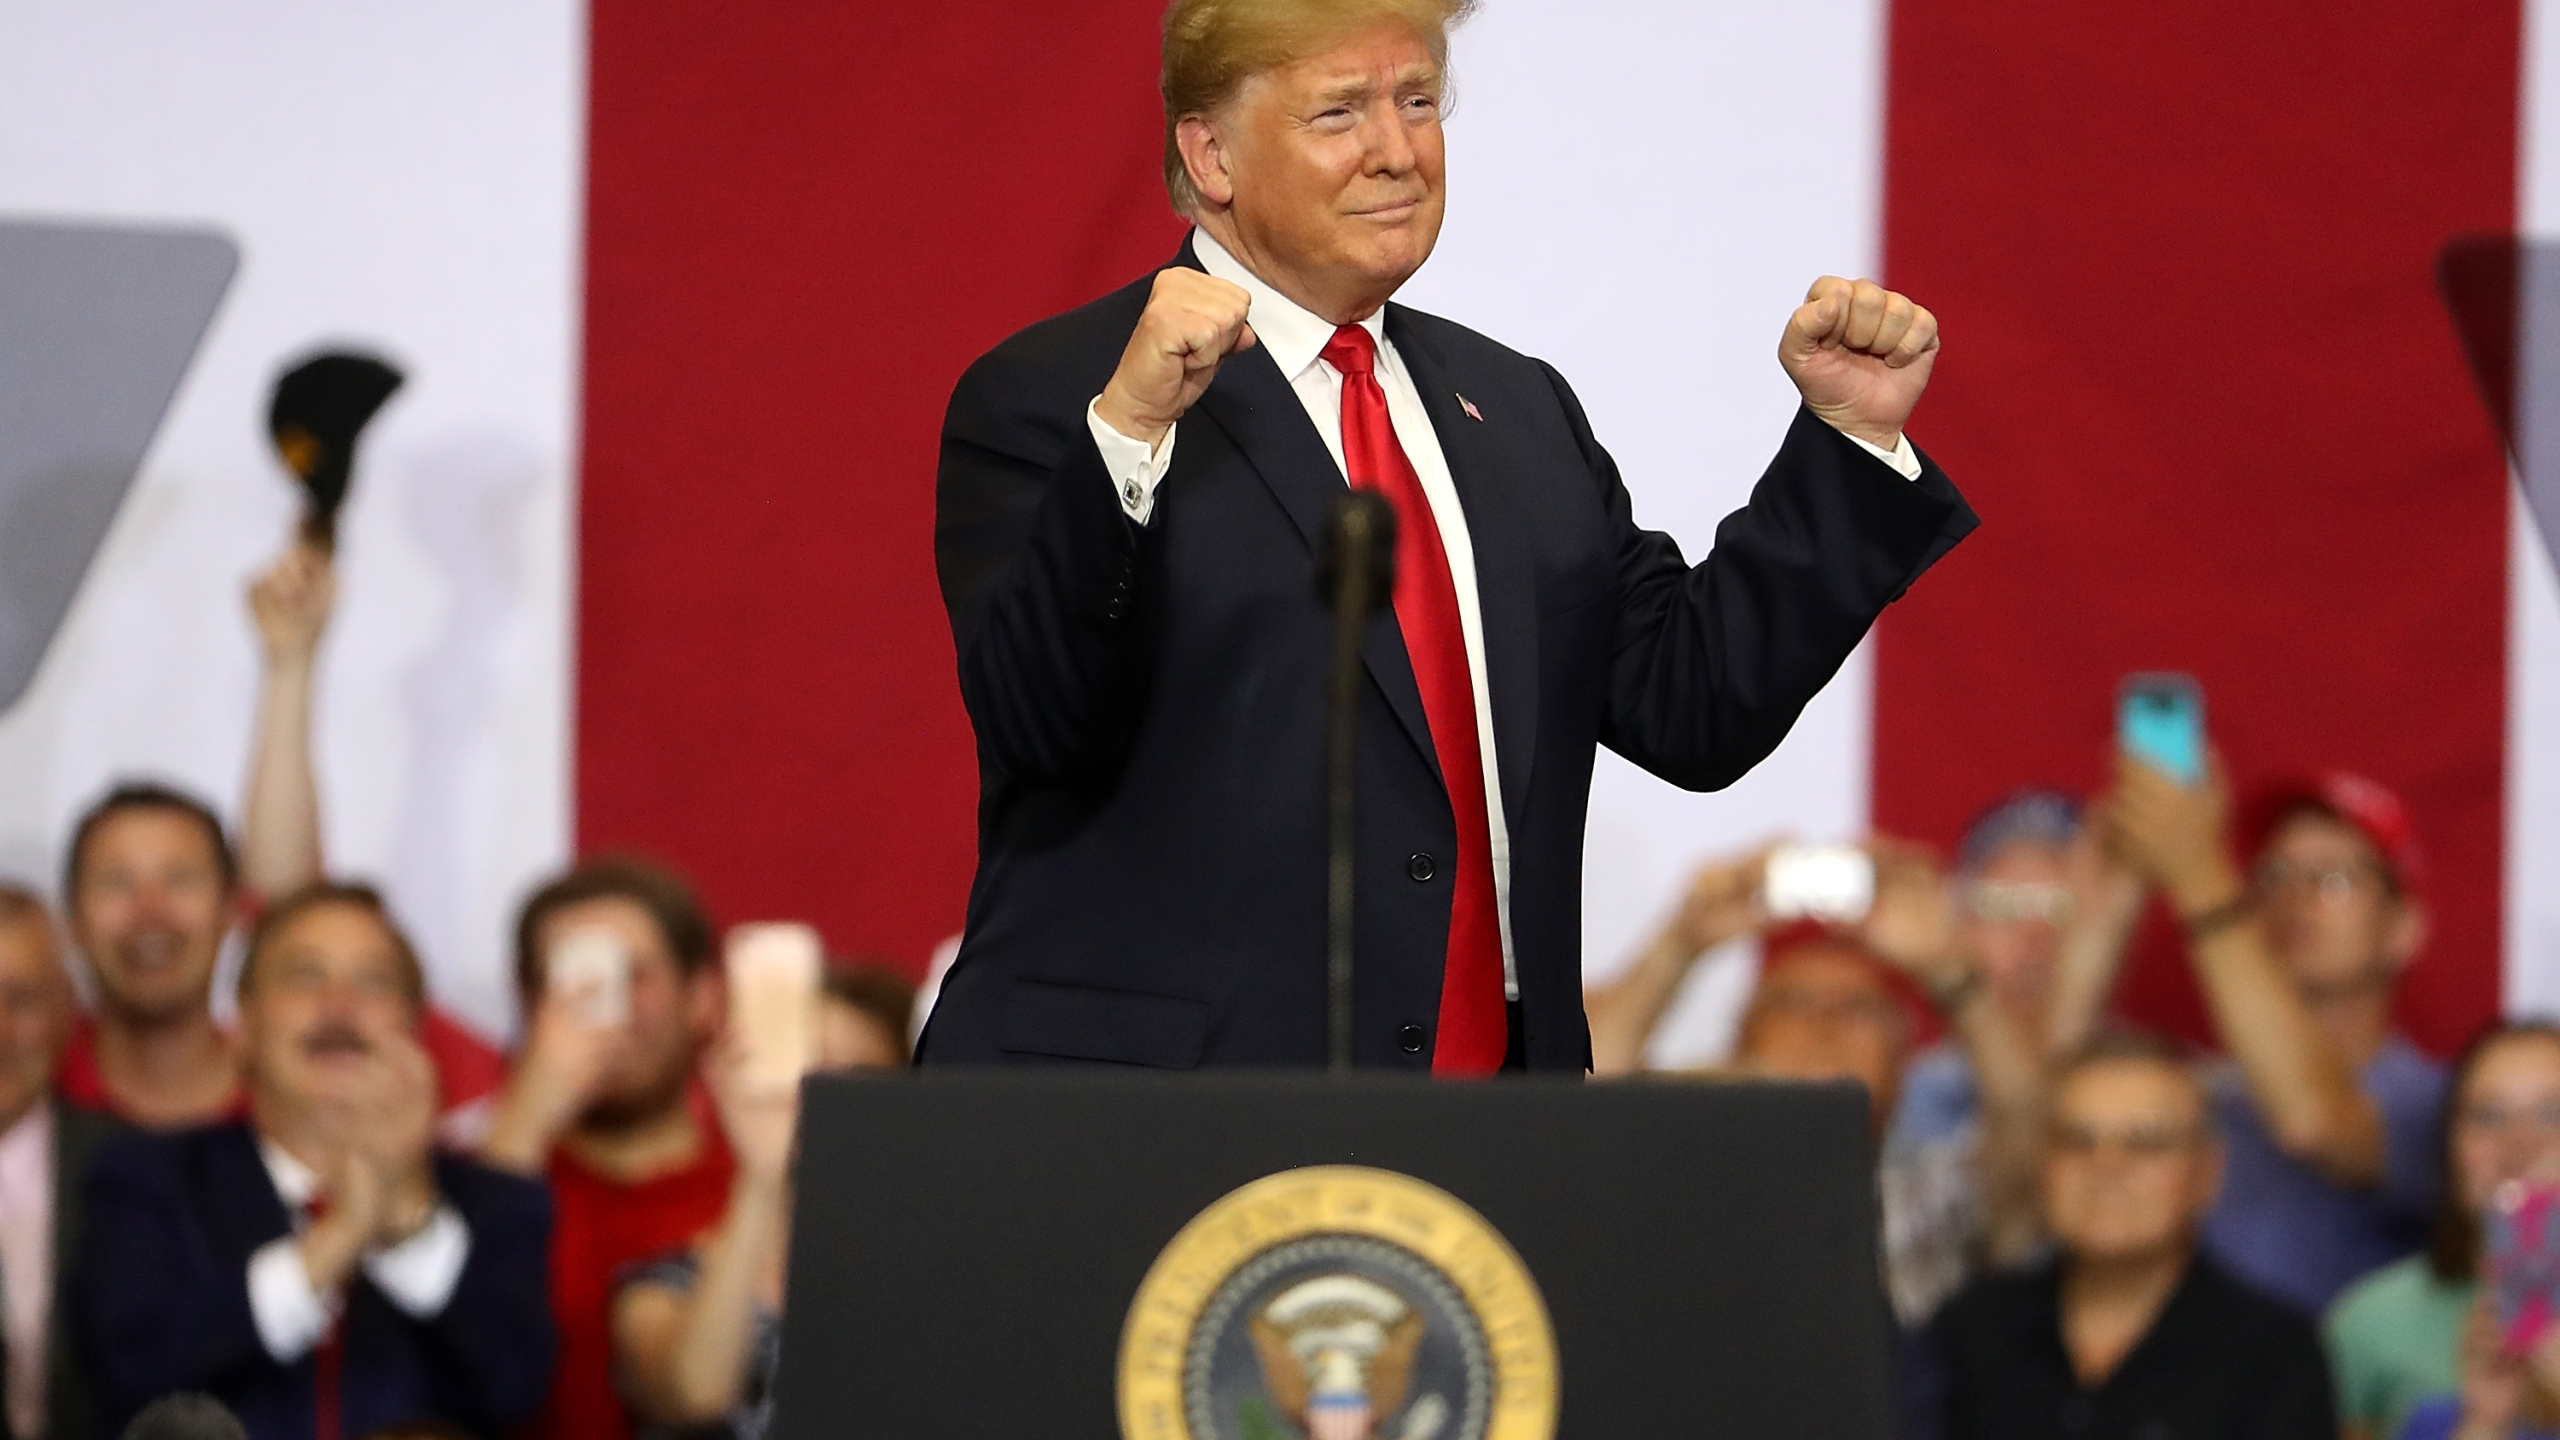 Donald Trump greets supporters during a campaign rally at Scheels Arena on June 27, 2018 in Fargo, North Dakota. (Credit: Justin Sullivan/Getty Images)